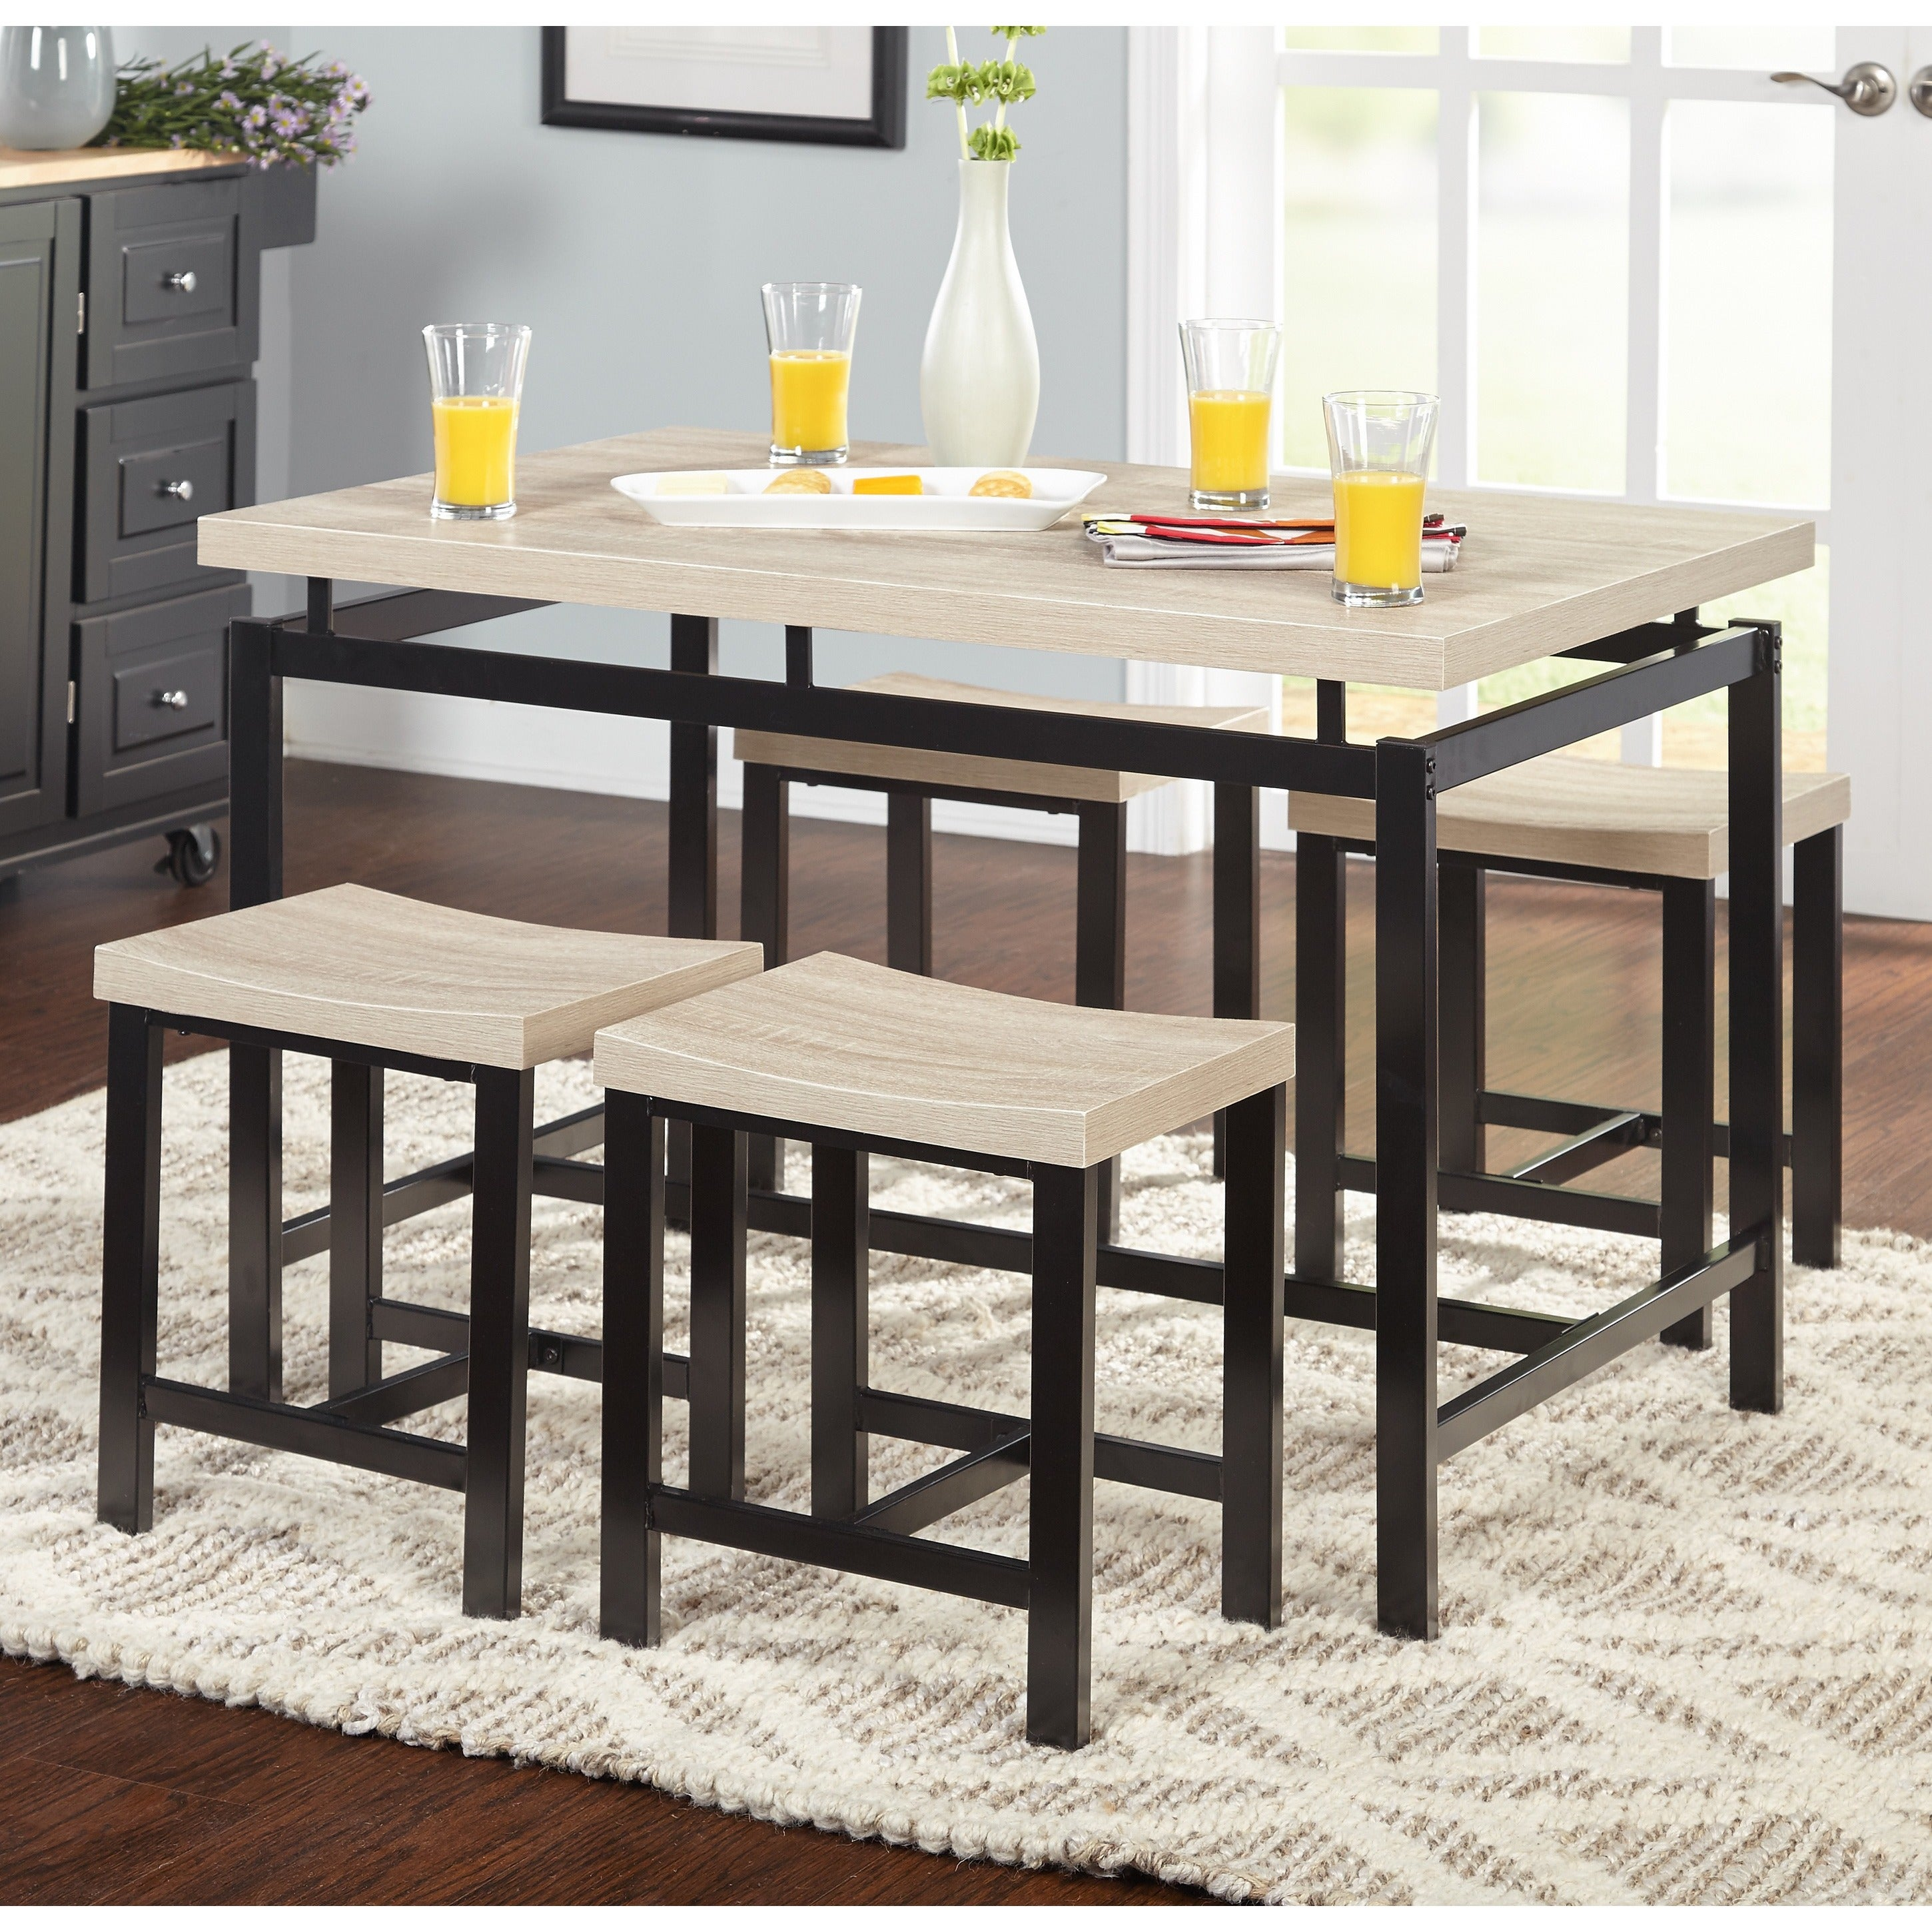 Shop Simple Living Delano Two Tone 5 Piece Dining Set On Sale